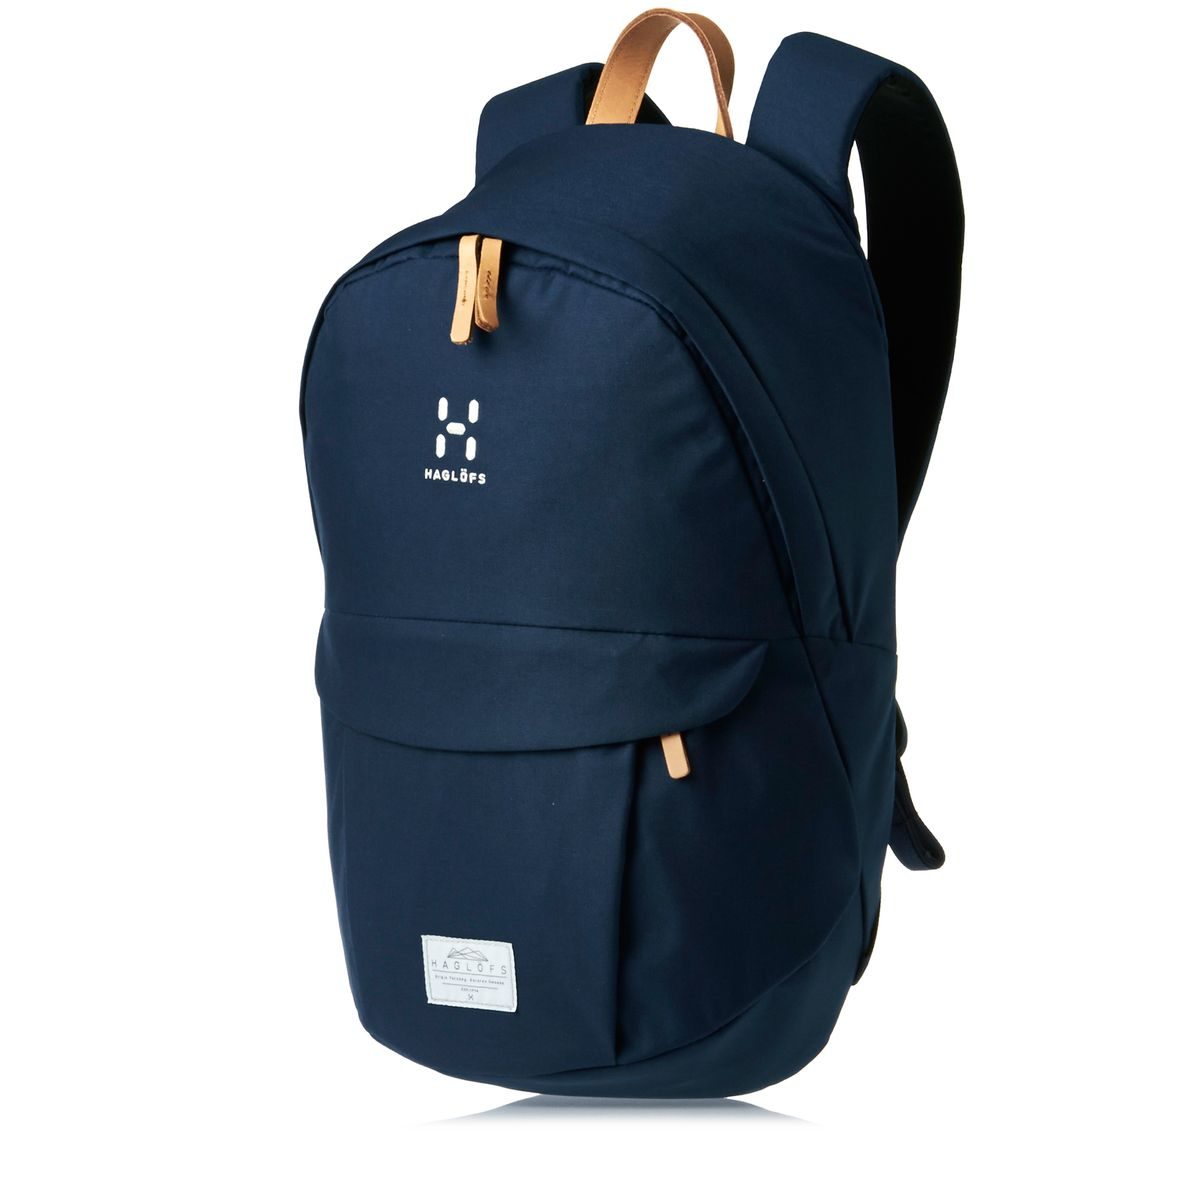 haglofs-backpacks-haglofs-sarna-20l-backpack-blue-ink